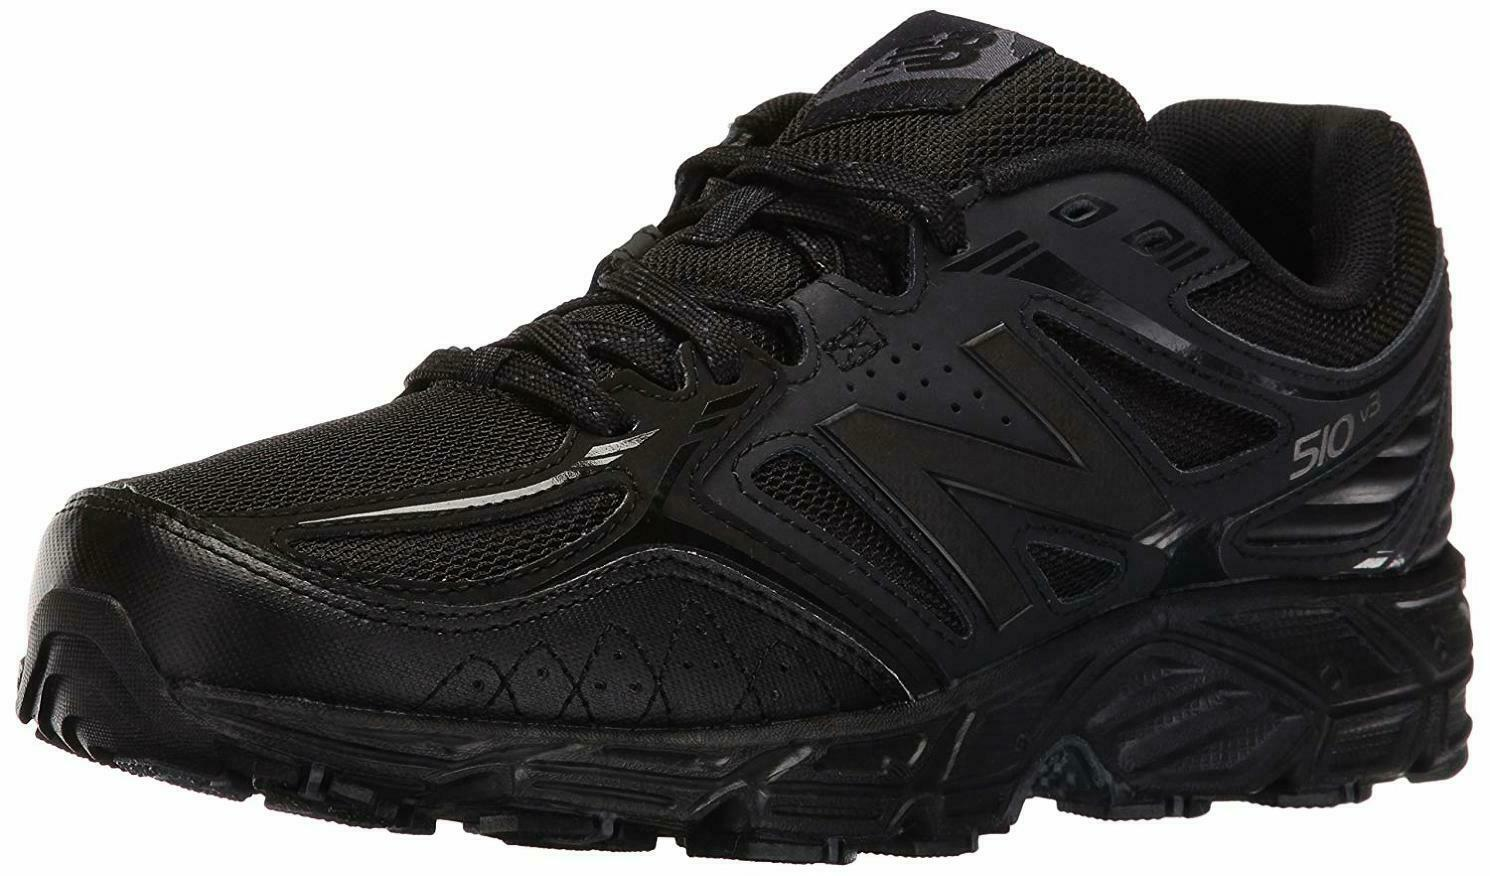 New Balance Men's 510v3 Trail Running shoes - Choose SZ color